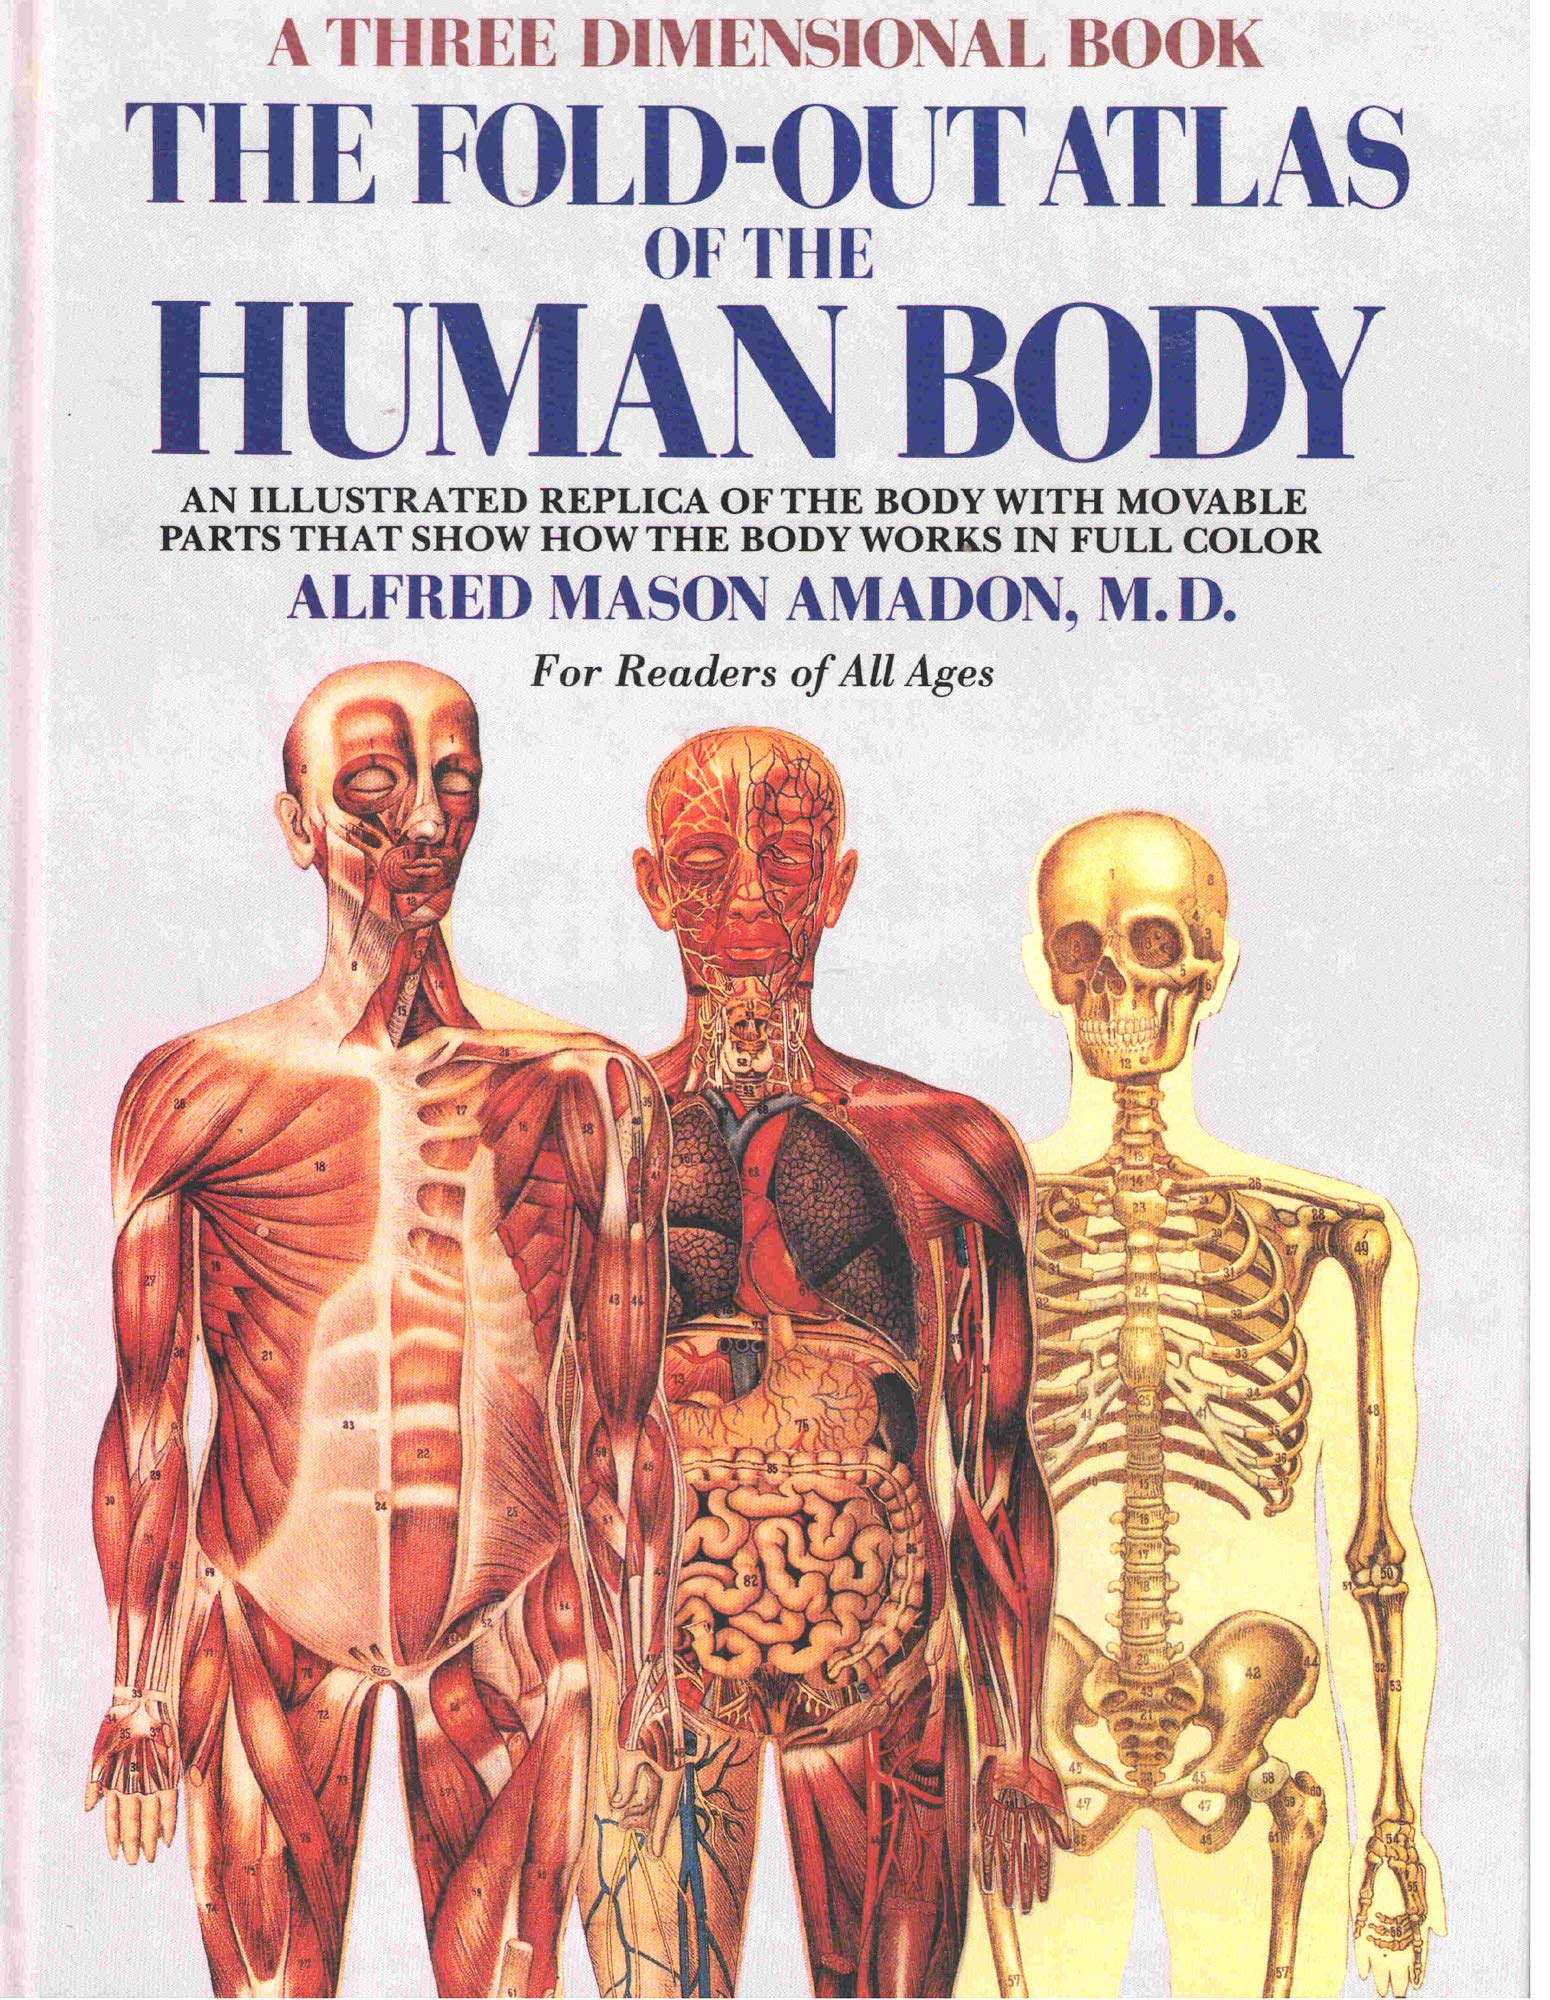 The Fold Out Atlas Of The Human Body A Three Dimensional Book